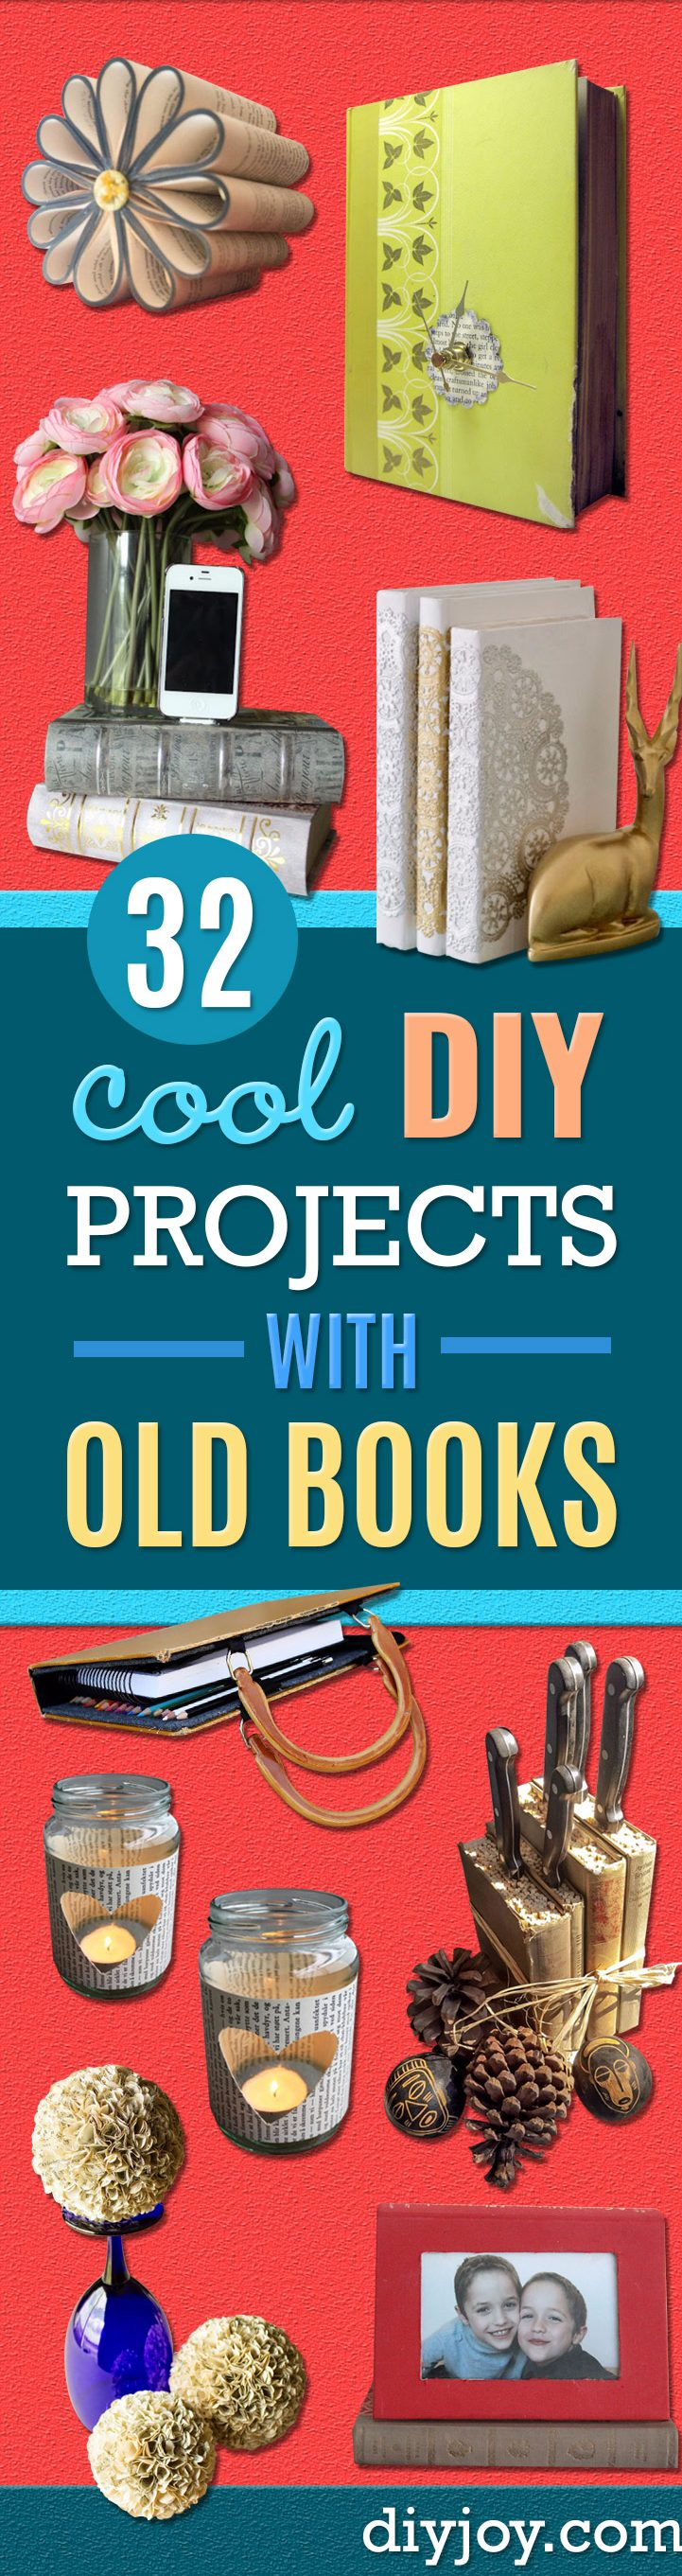 DIY Projects Made With Old Books - Make DIY Gifts, Crafts and Home Decor With Old Book Pages and Hardcover and Paperbacks - Easy Shelving, Decorations, Wall Art and Centerpices with BOOKS